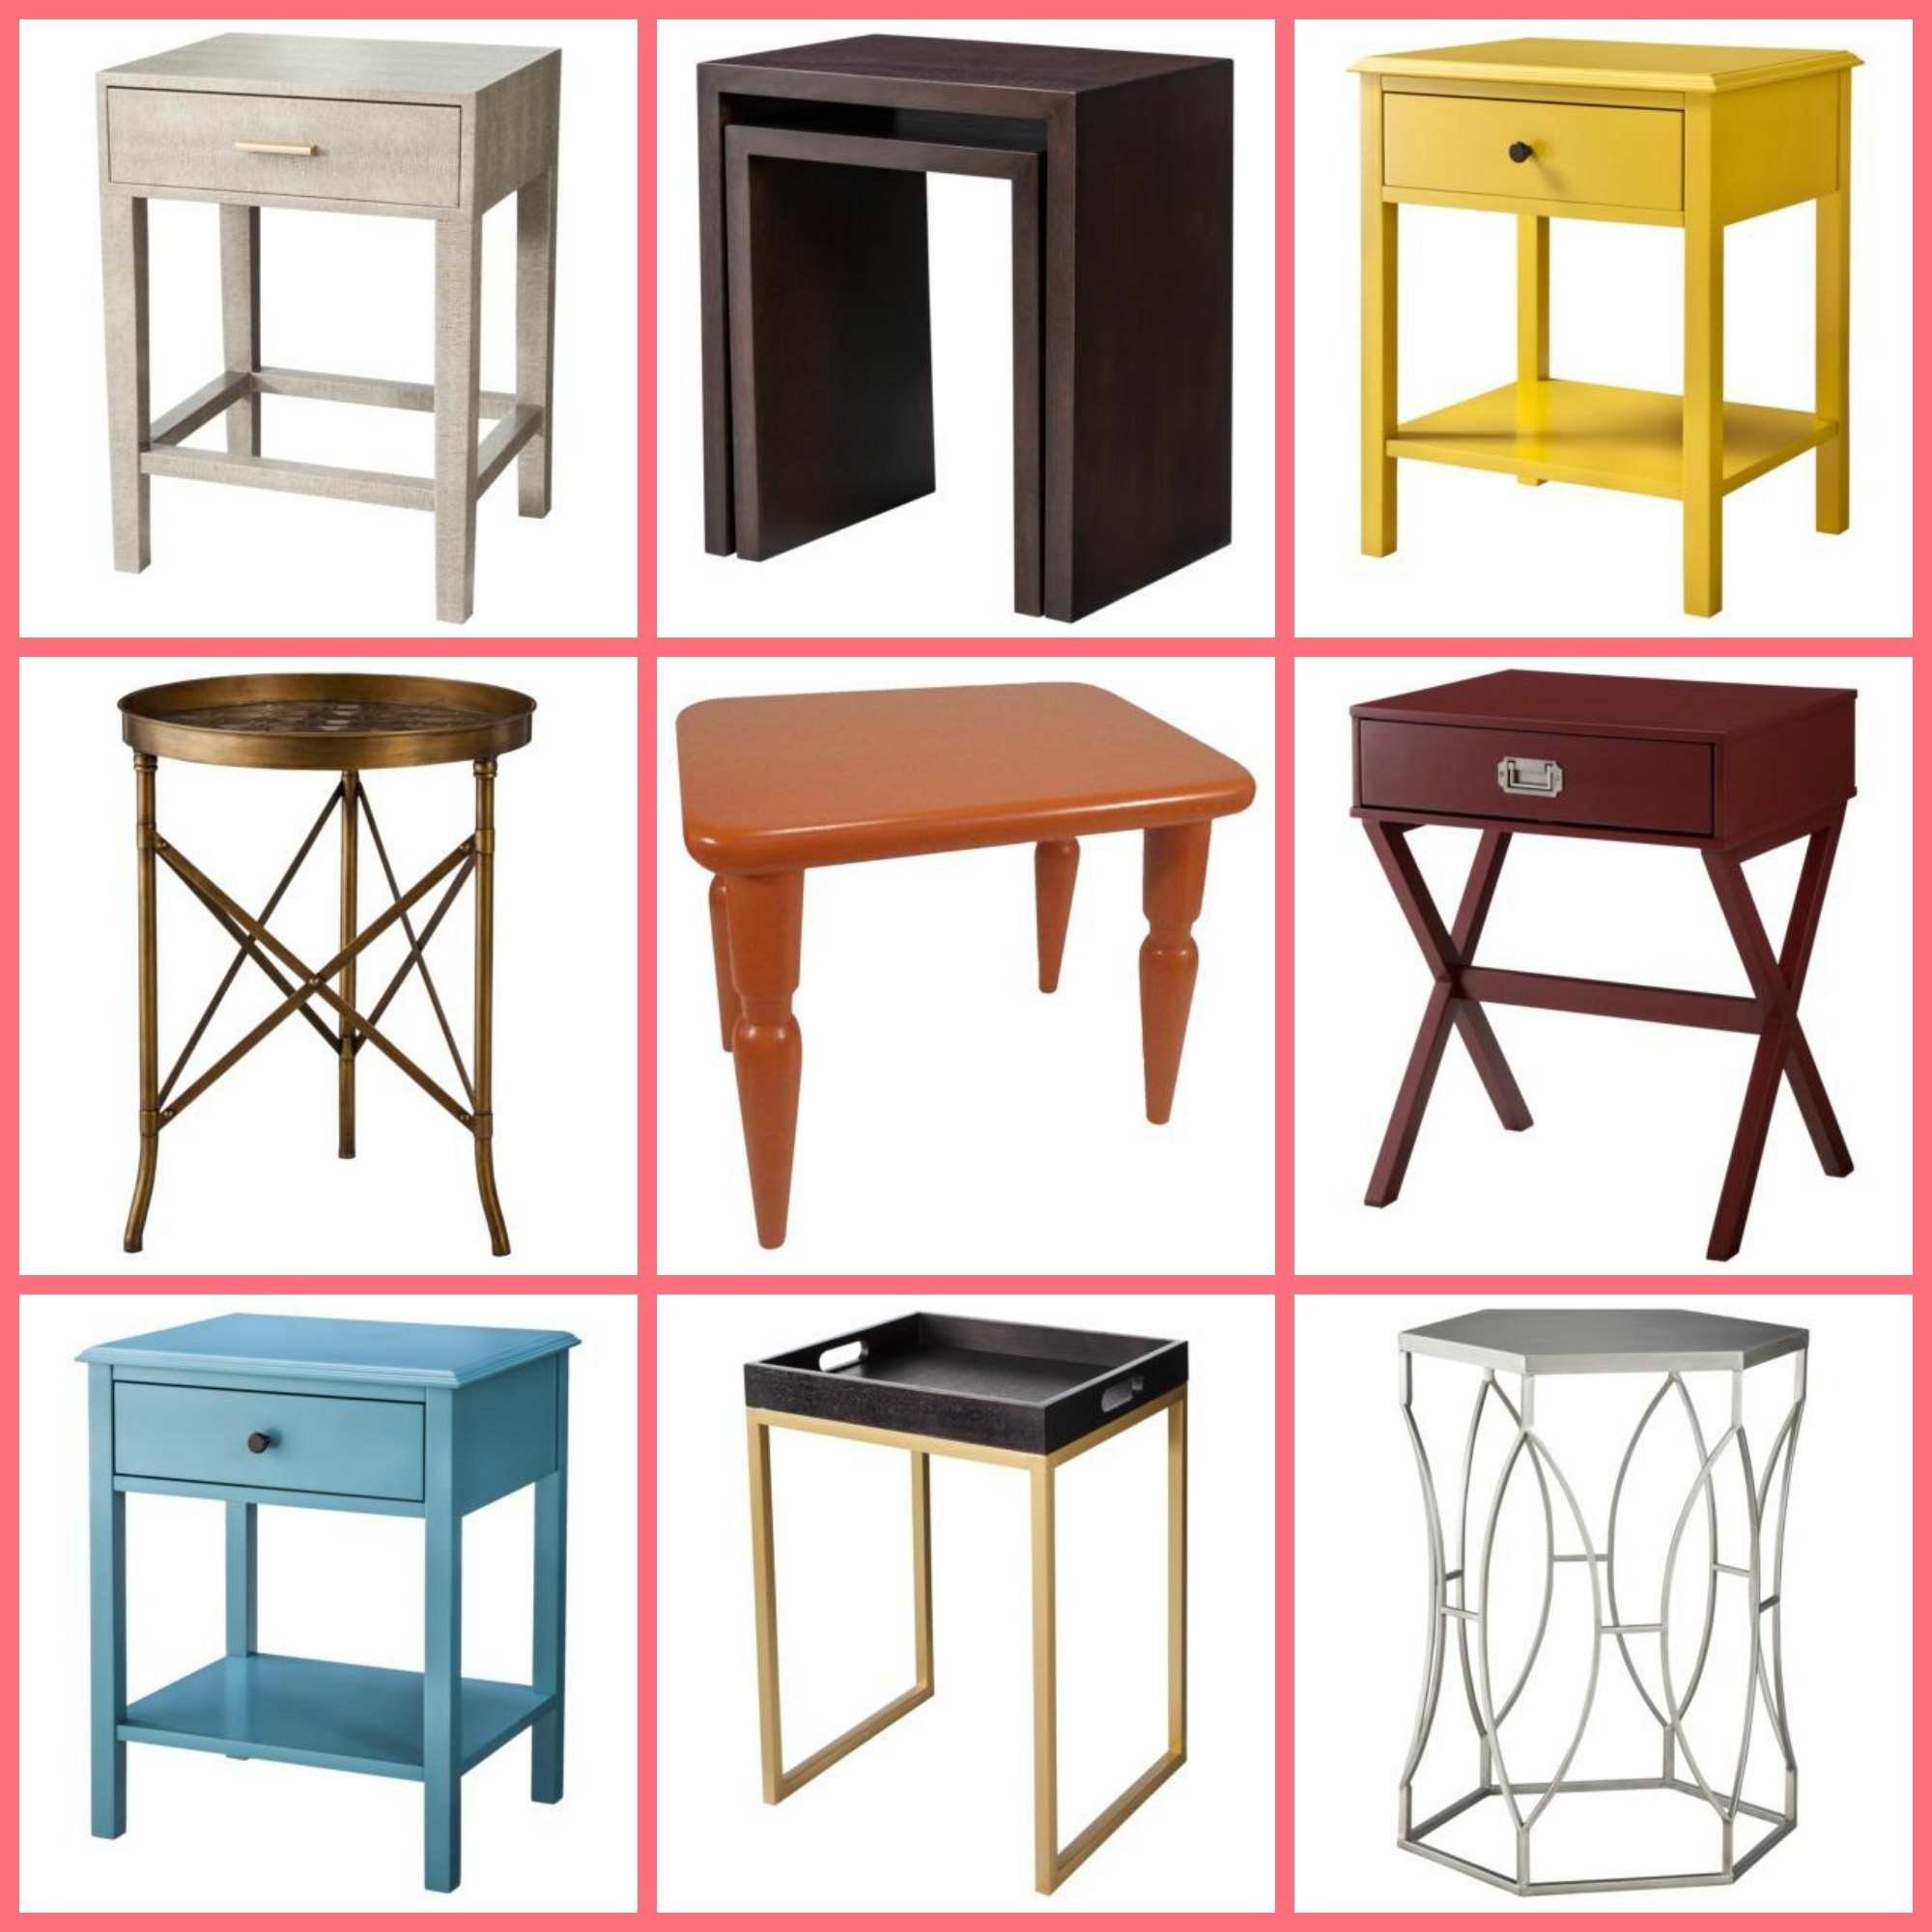 target threshold accent tables take your targertthr table with drawer clockwise from top left shabby chic side glass mirror bedside gold color coffee home goods dining sets large